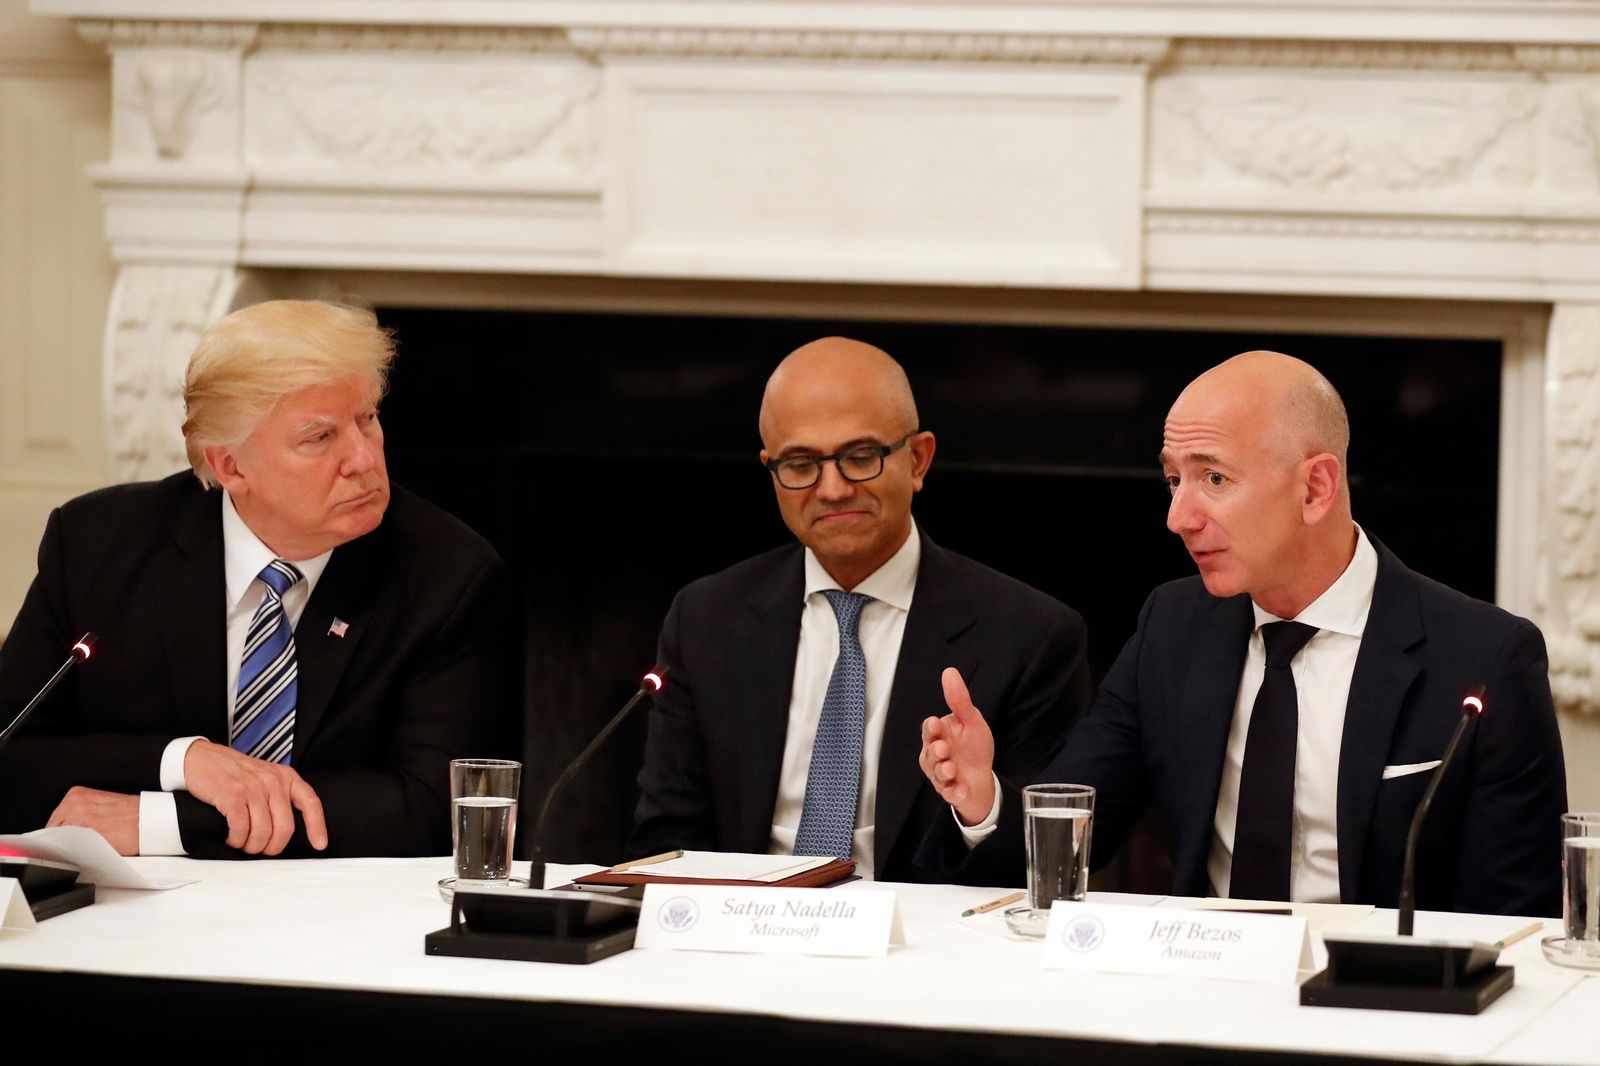 FILE - In this June 19, 2017, file photo President Donald Trump, left, and Satya Nadella, Chief Executive Officer of Microsoft, center, listen as Jeff Bezos, Chief Executive Officer of Amazon, speaks during an American Technology Council roundtable in the State Dinning Room of the White House in Washington.{ } (AP Photo/Alex Brandon, File)